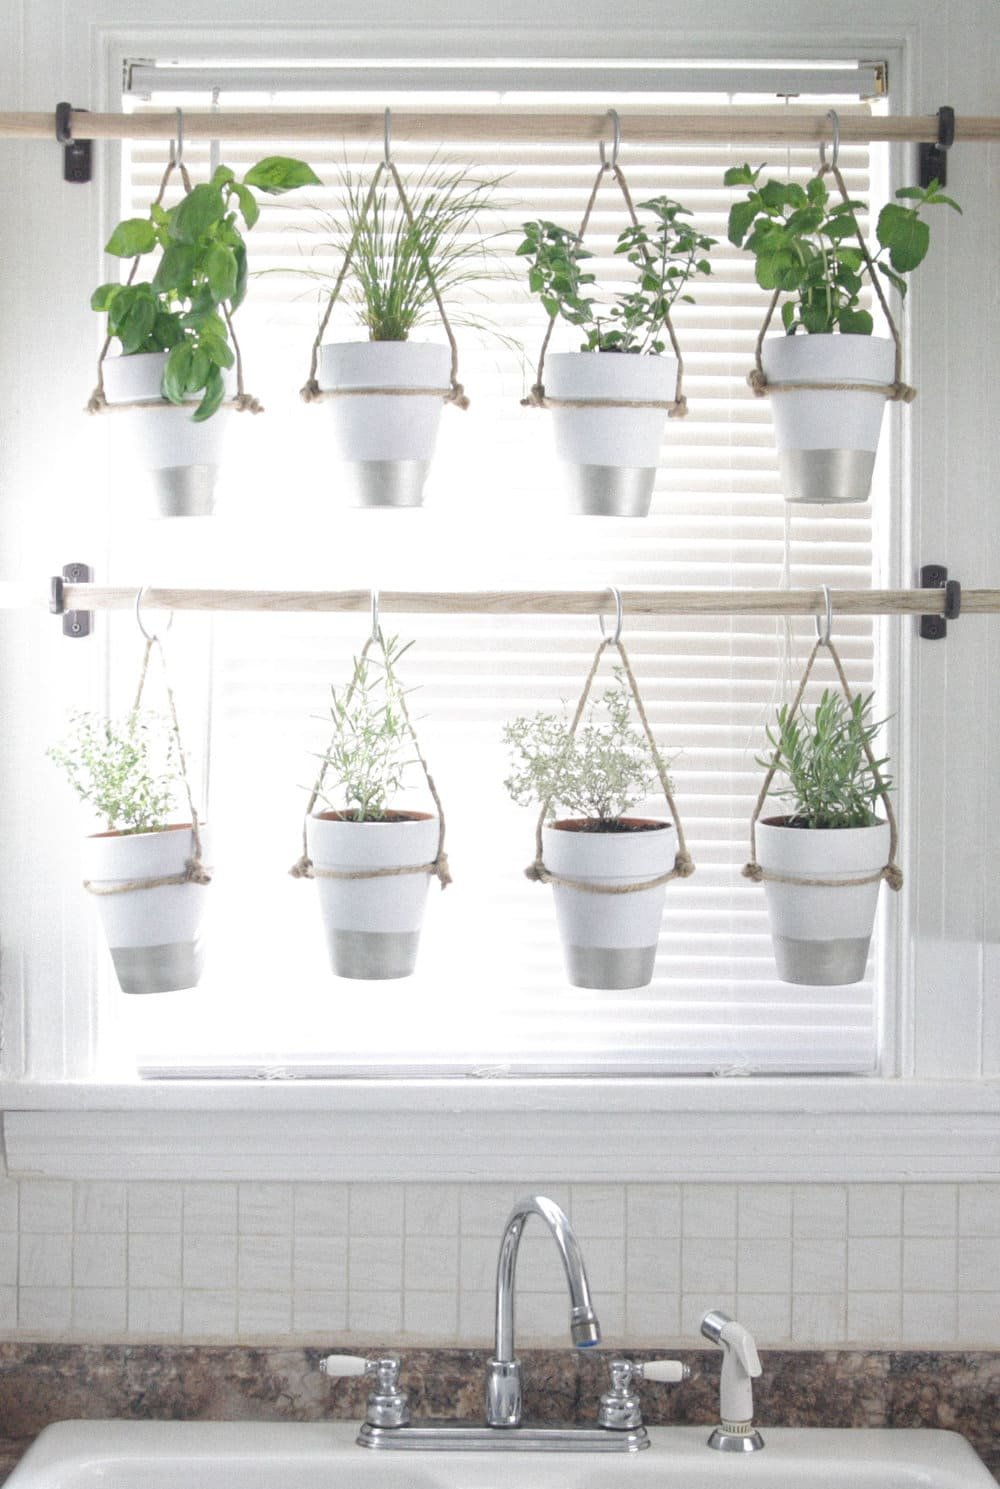 6.Simphome.com Hanging White Indoor Potted Herb Garden